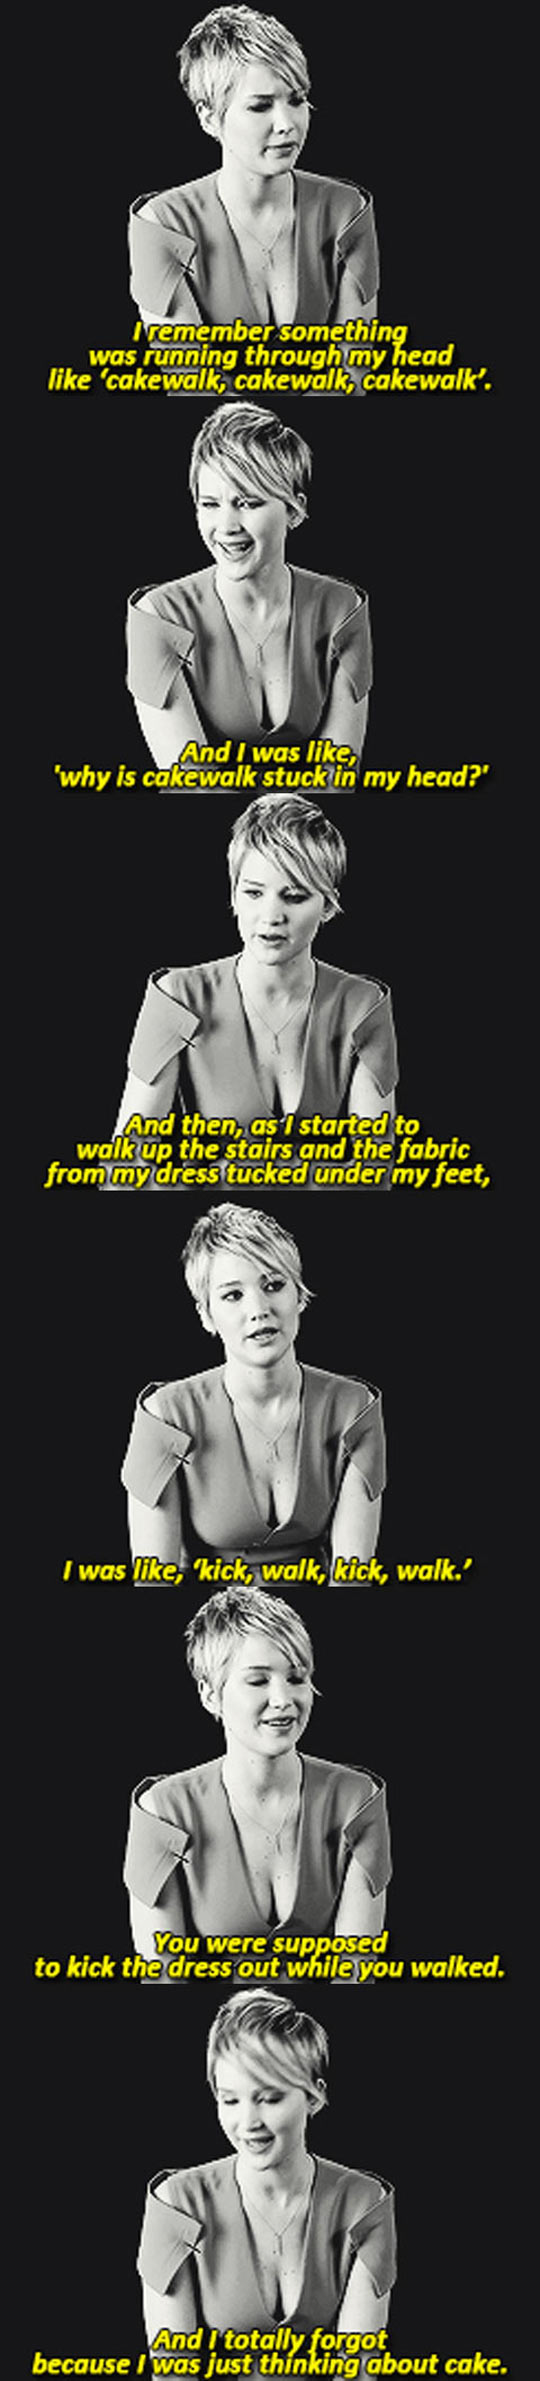 Jennifer Lawrence Talks About Her Famous Fall At The Oscars